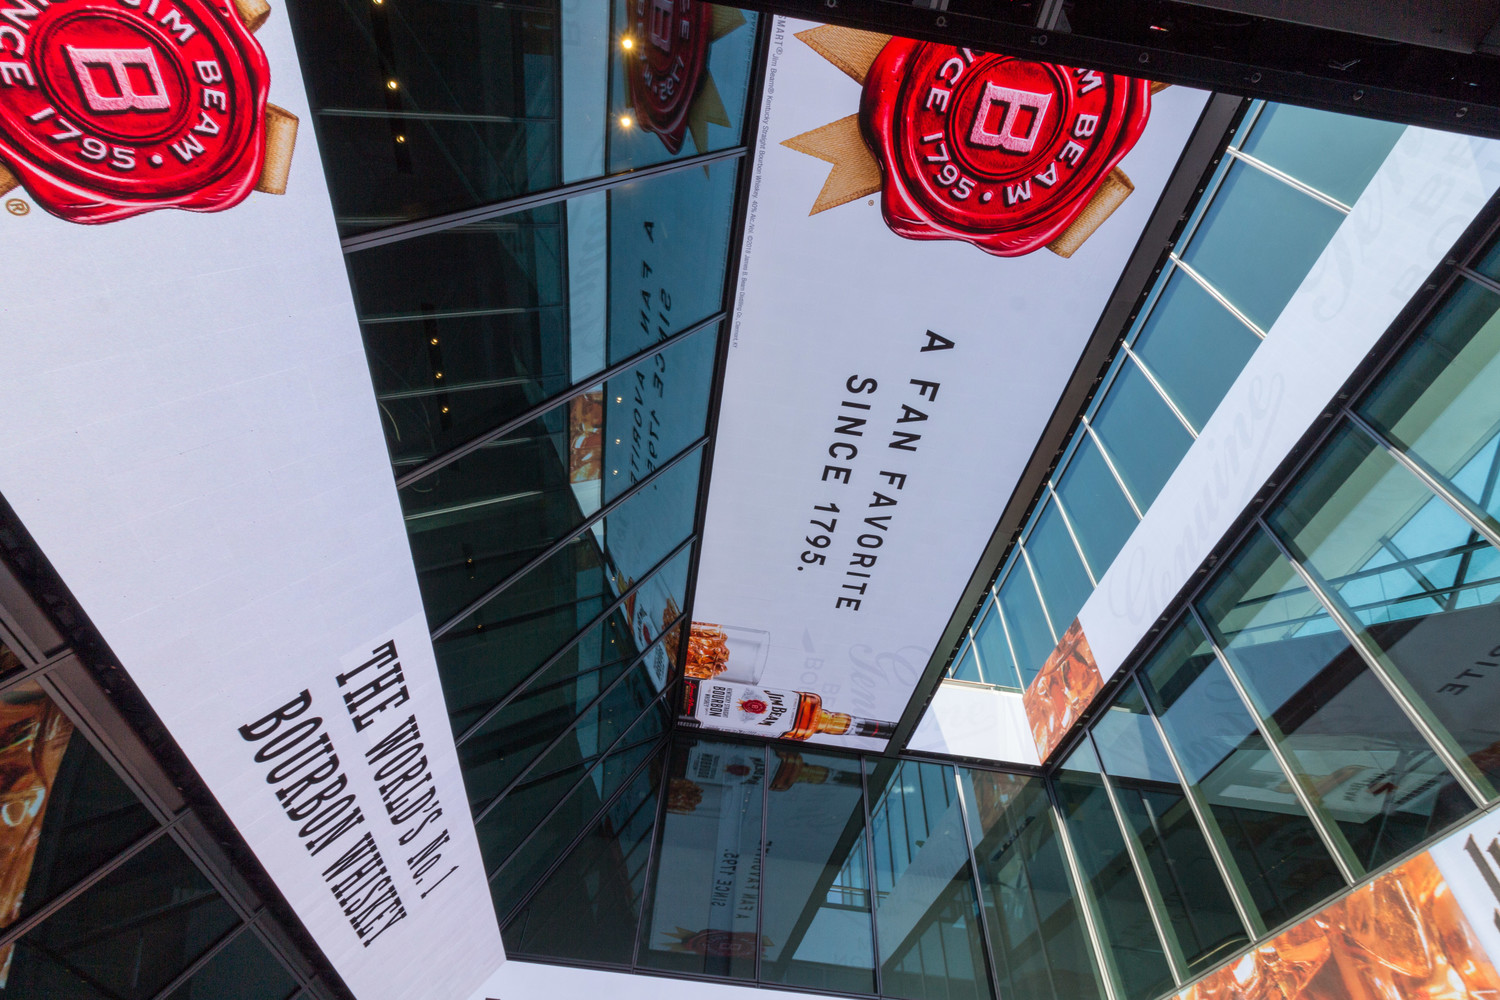 ANC launches new digital media network at the Howard Hughes Corporation's Pier 17 at Seaport District NYC